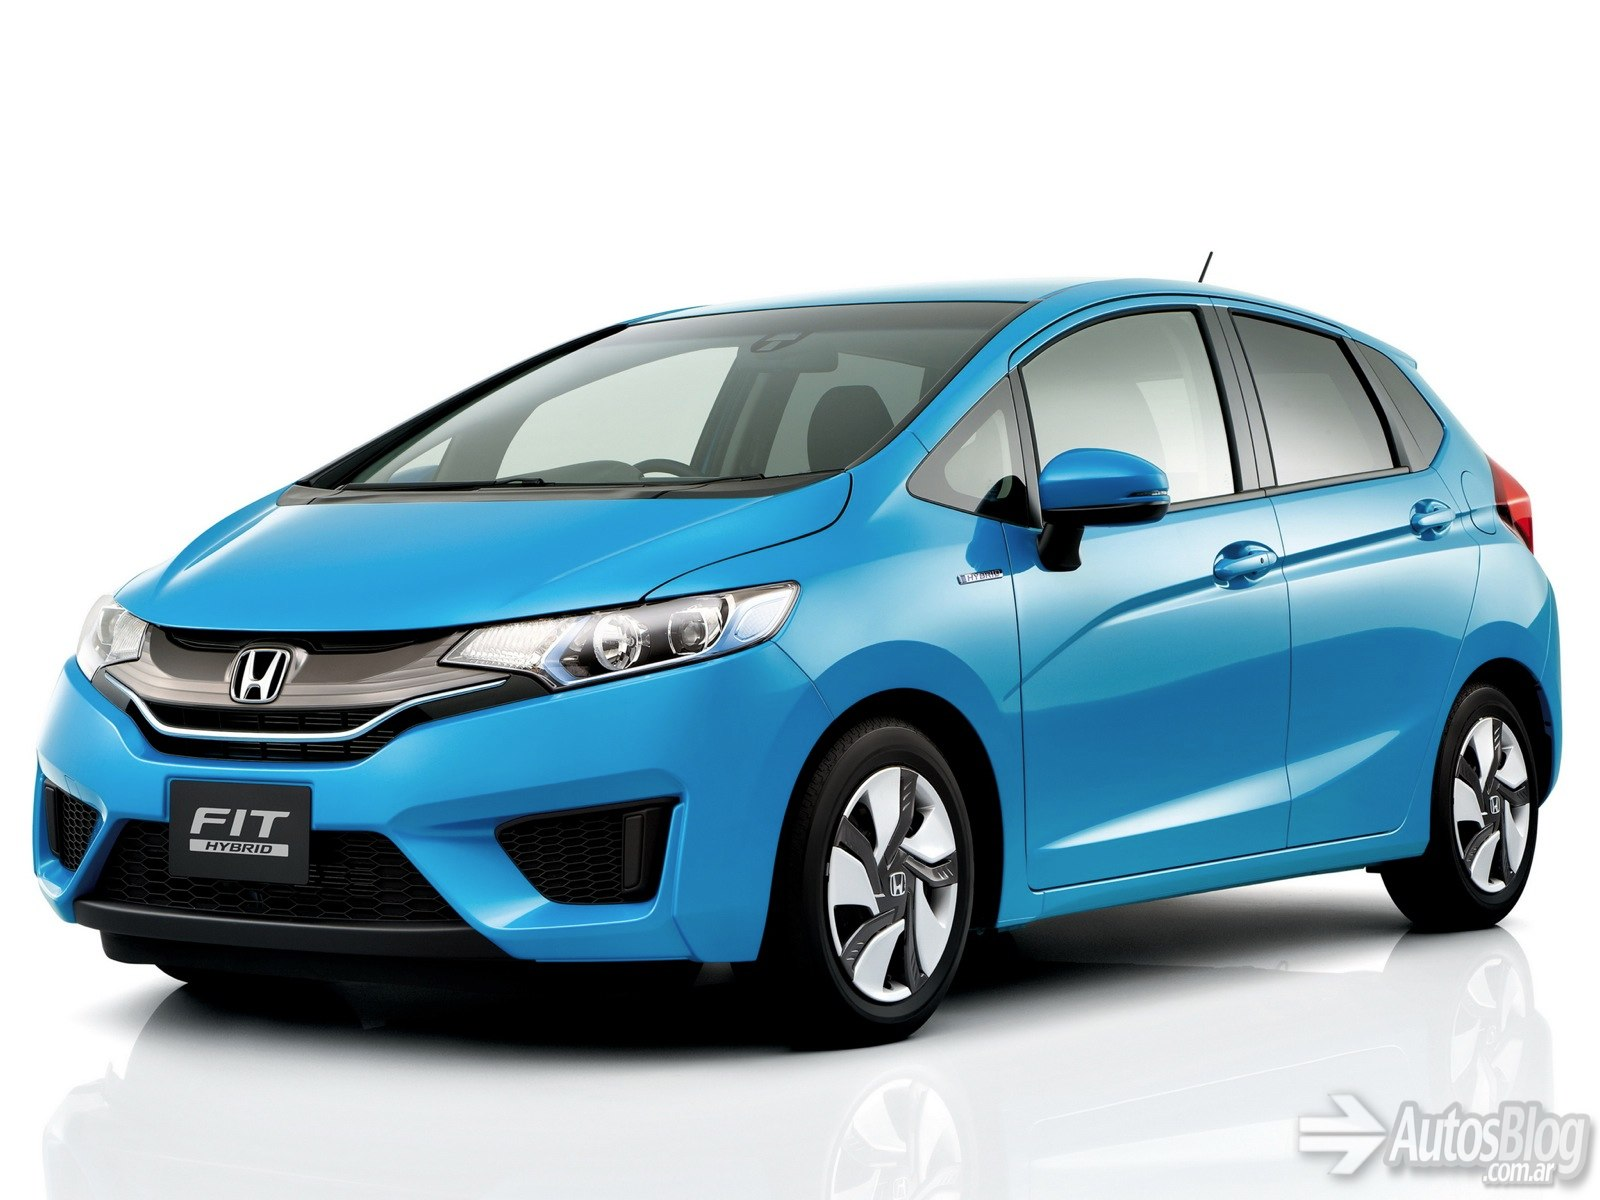 2014 honda fit iii pictures information and specs for Honda fit horsepower